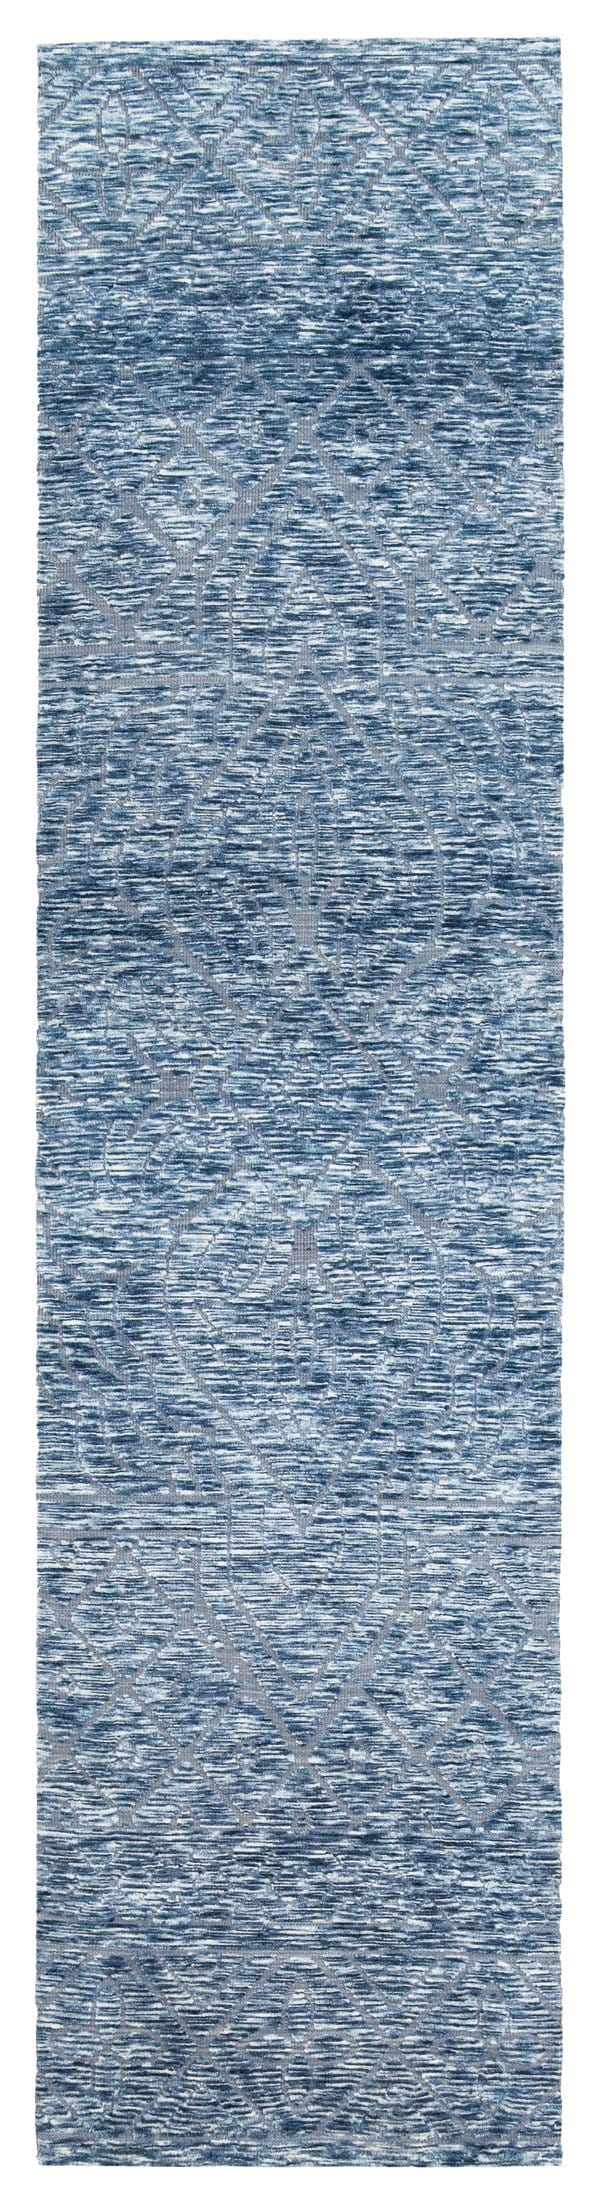 Darcy Blue Ivory and Charcoal Textured Tribal Runner Rug